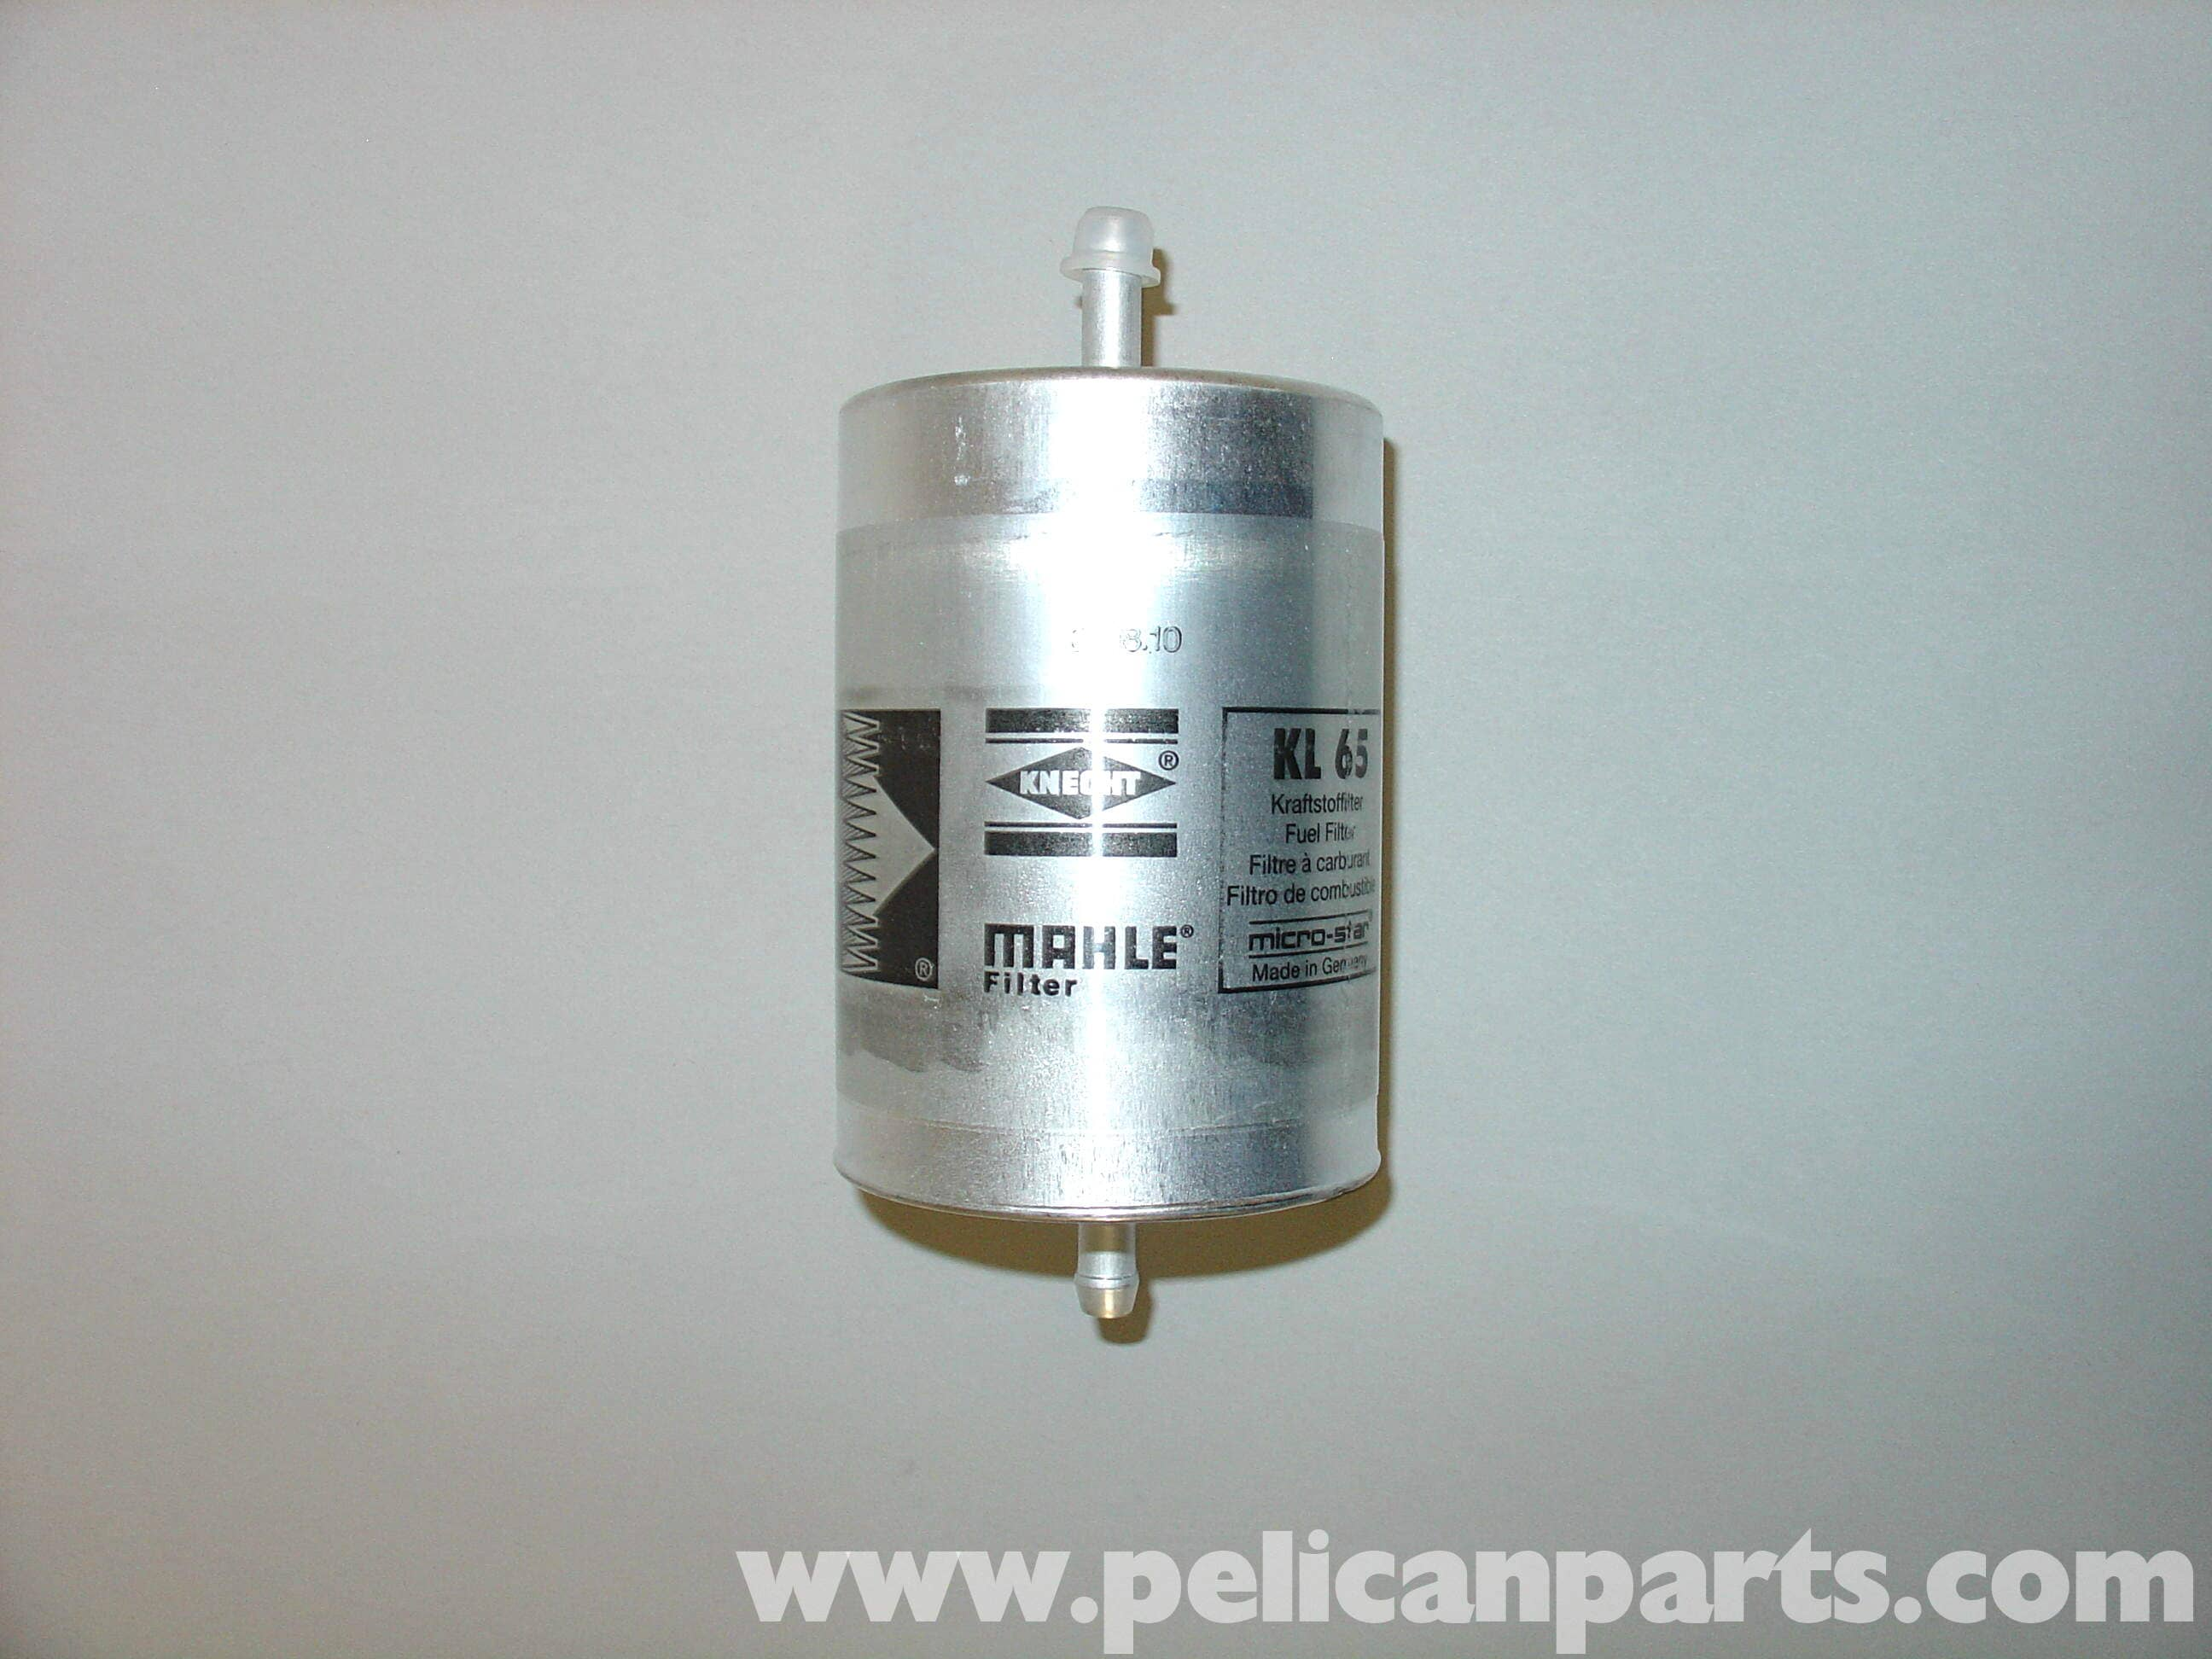 Mercedes Benz W210 Fuel Filter Replacement 1996 03 E320 E420 92 Toyota Camry Location Large Image Extra